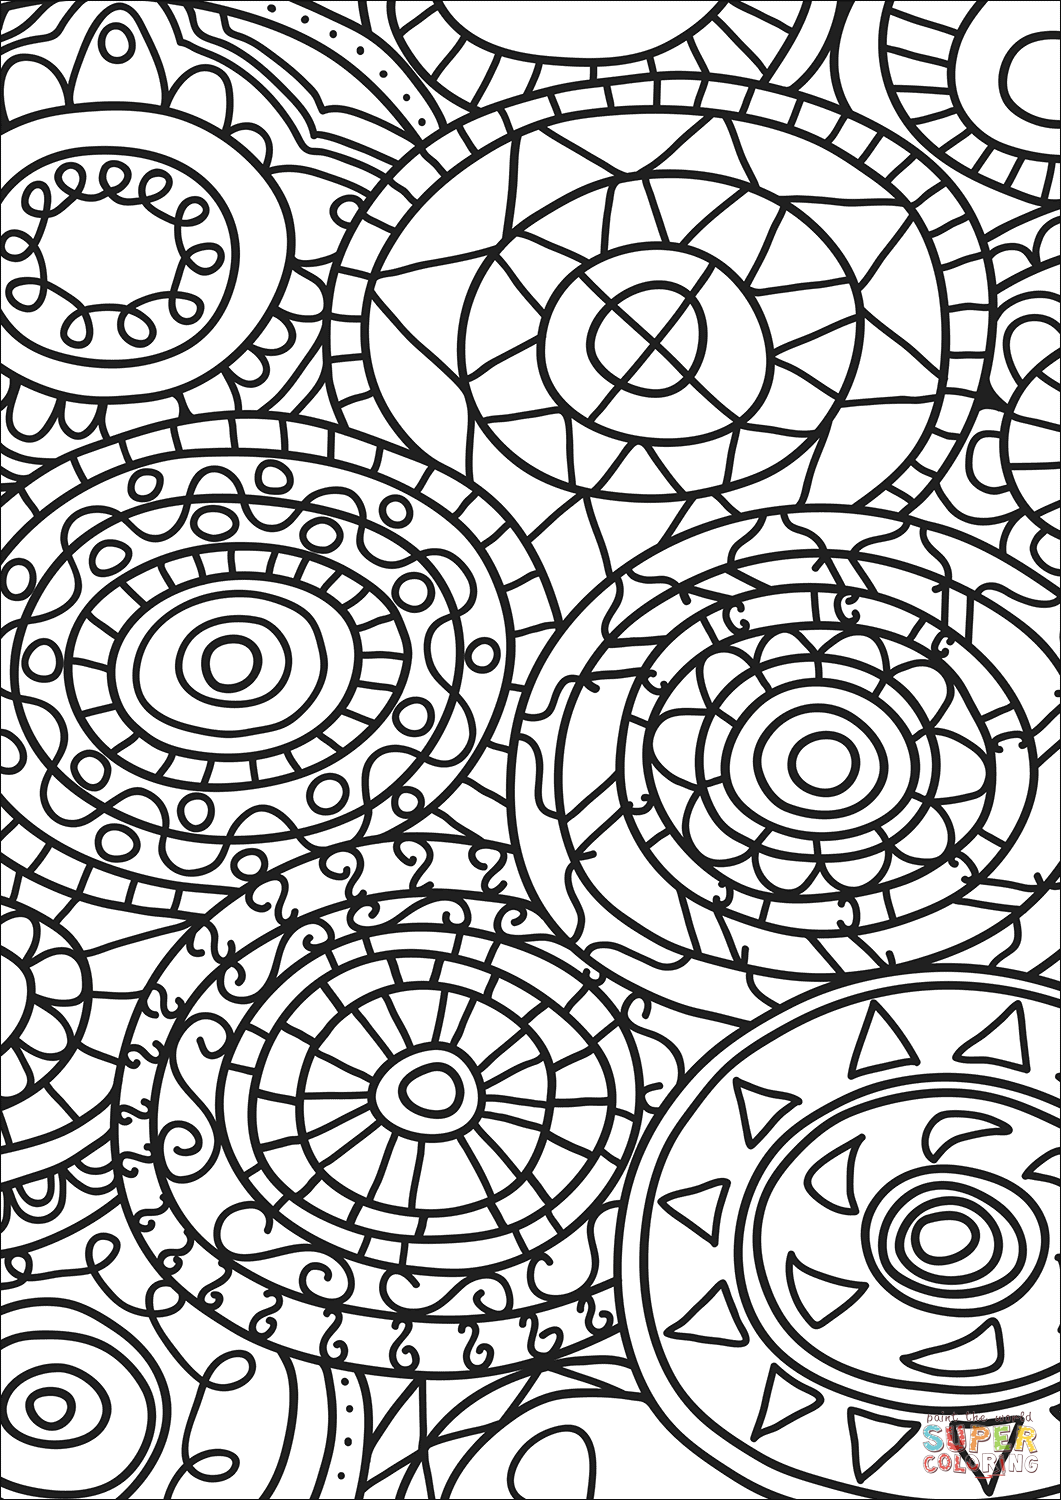 coloring art pages abstract doodle coloring page free printable coloring pages pages art coloring